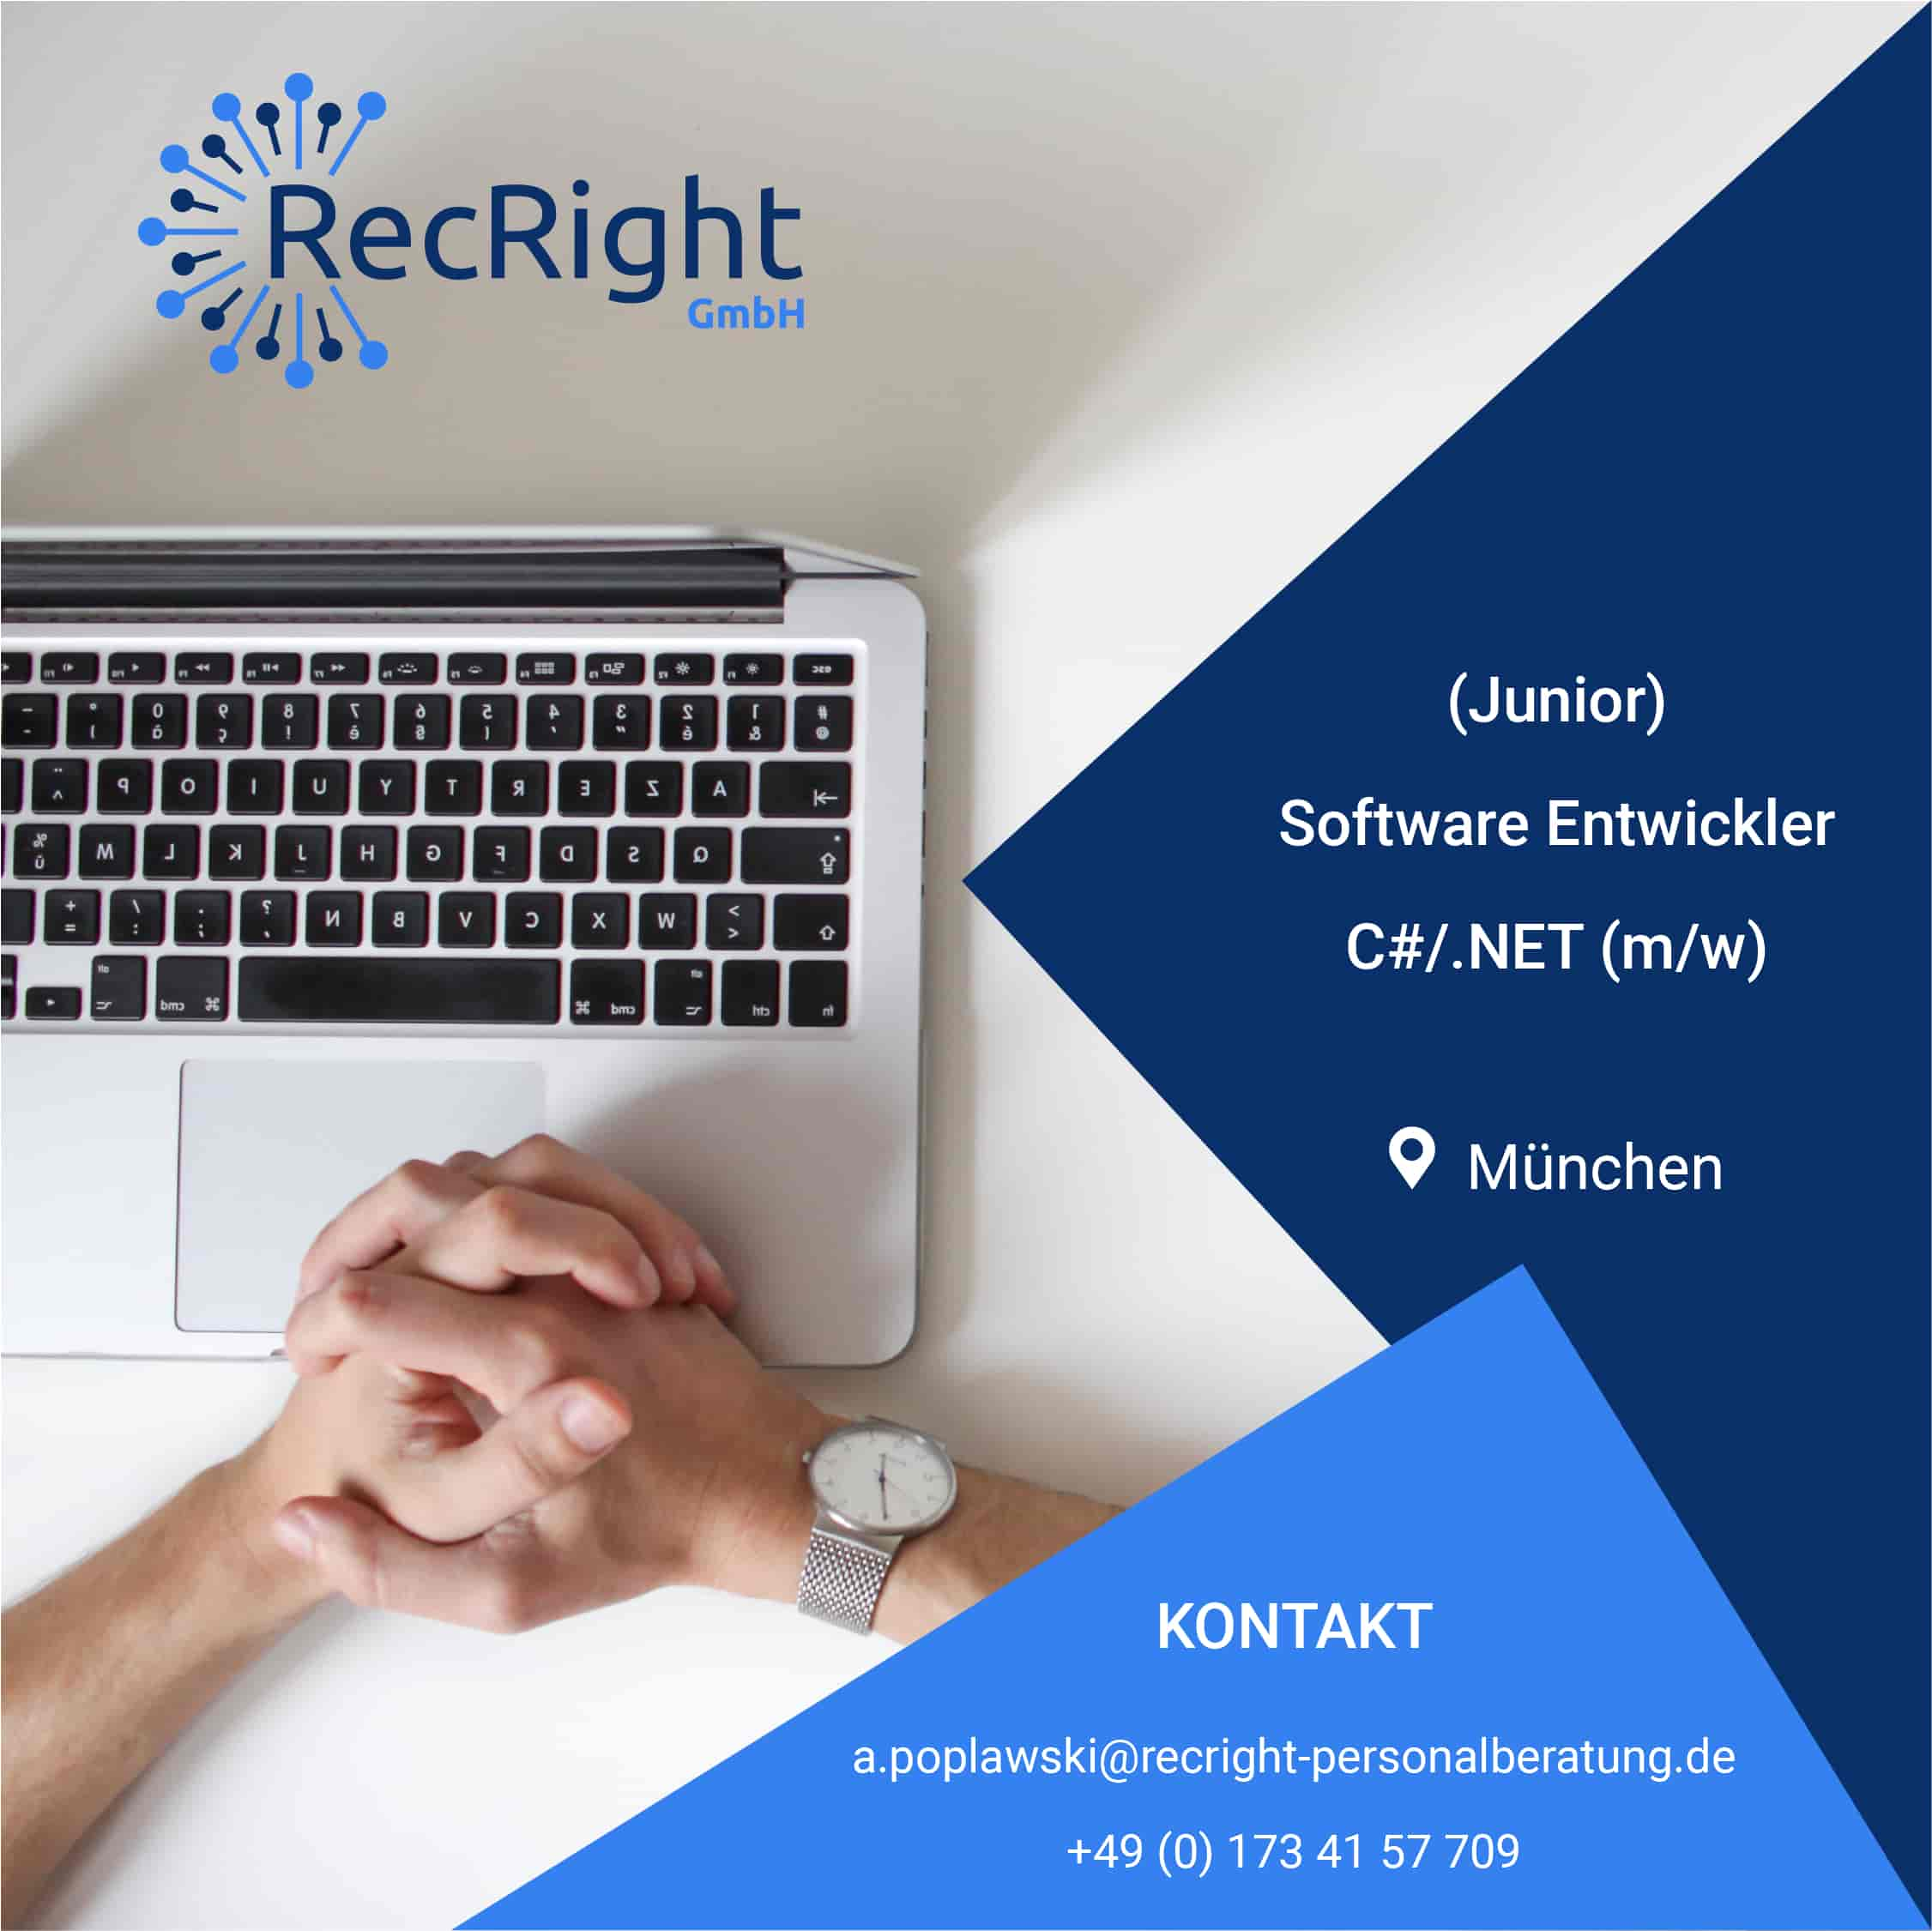 Junior Software Entwickler C# .NET in München